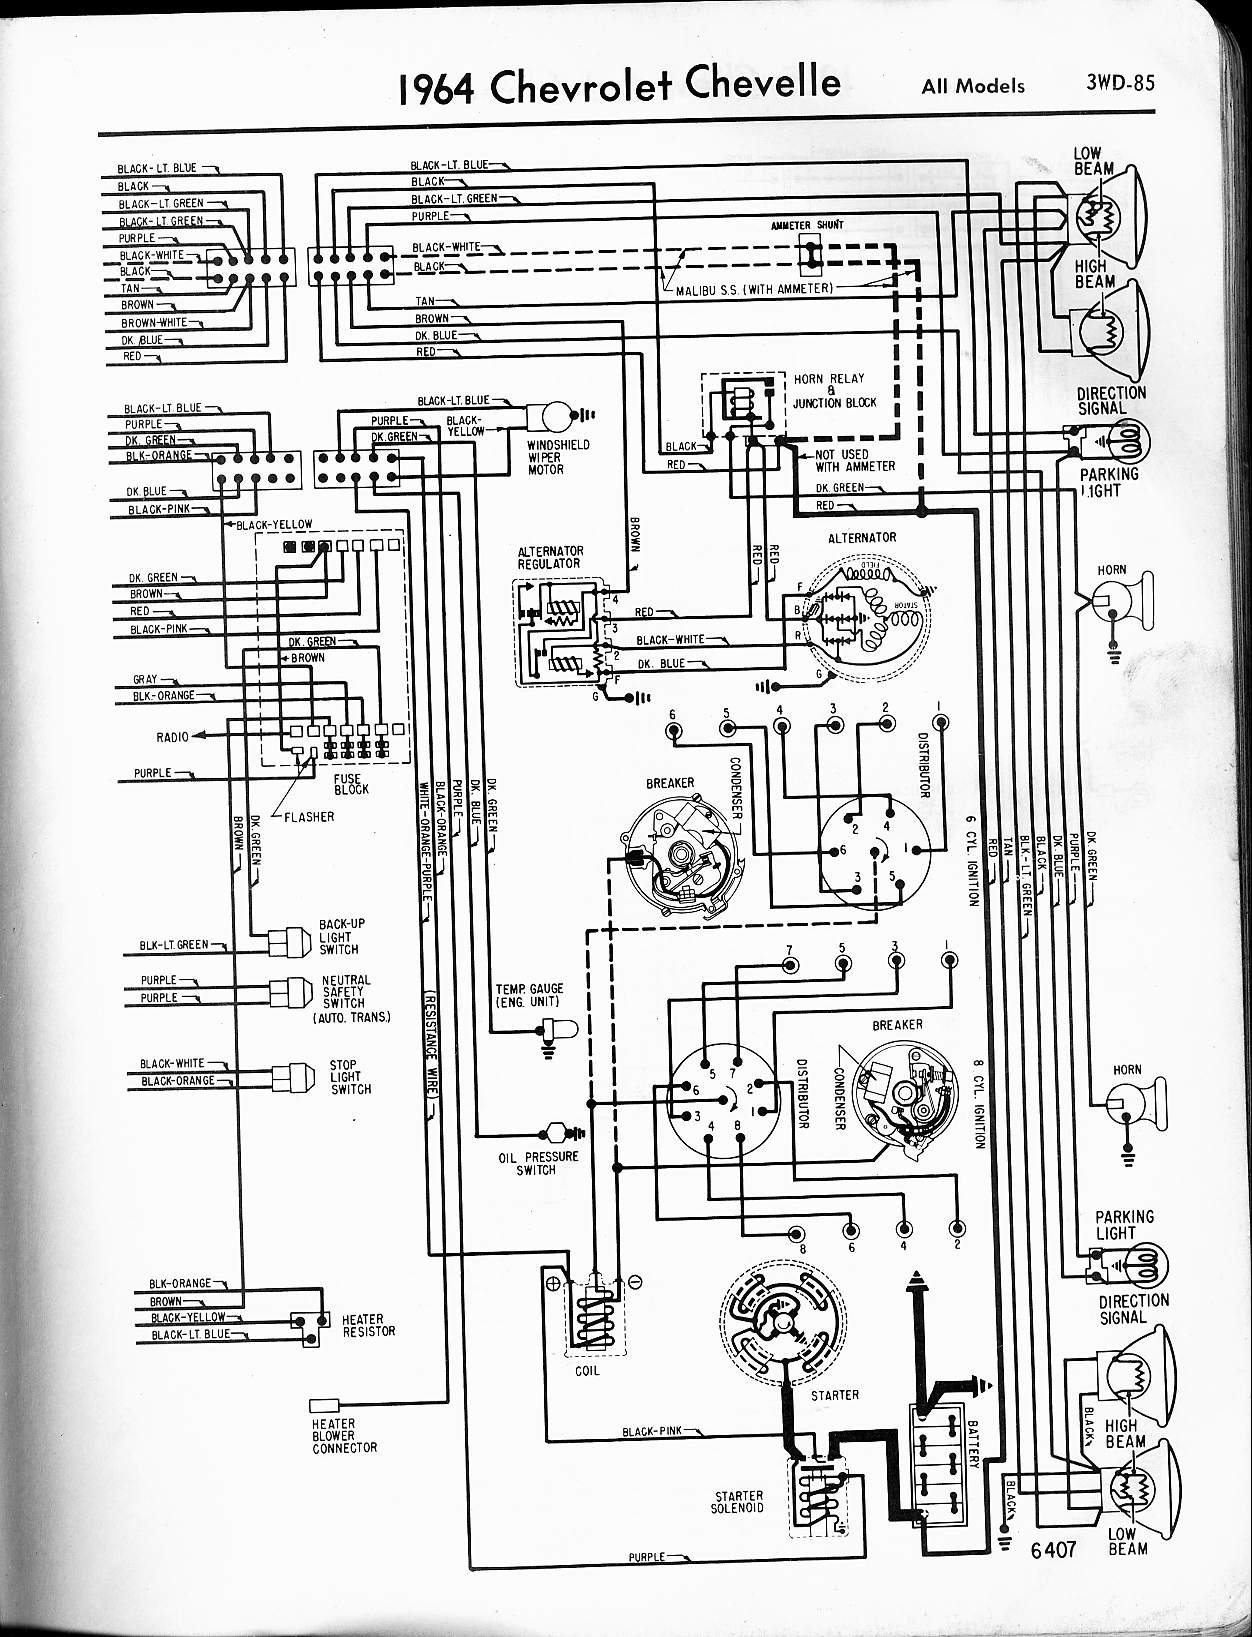 MWireChev64_3WD 085 1964 impala engine wiring harness data wiring diagram today